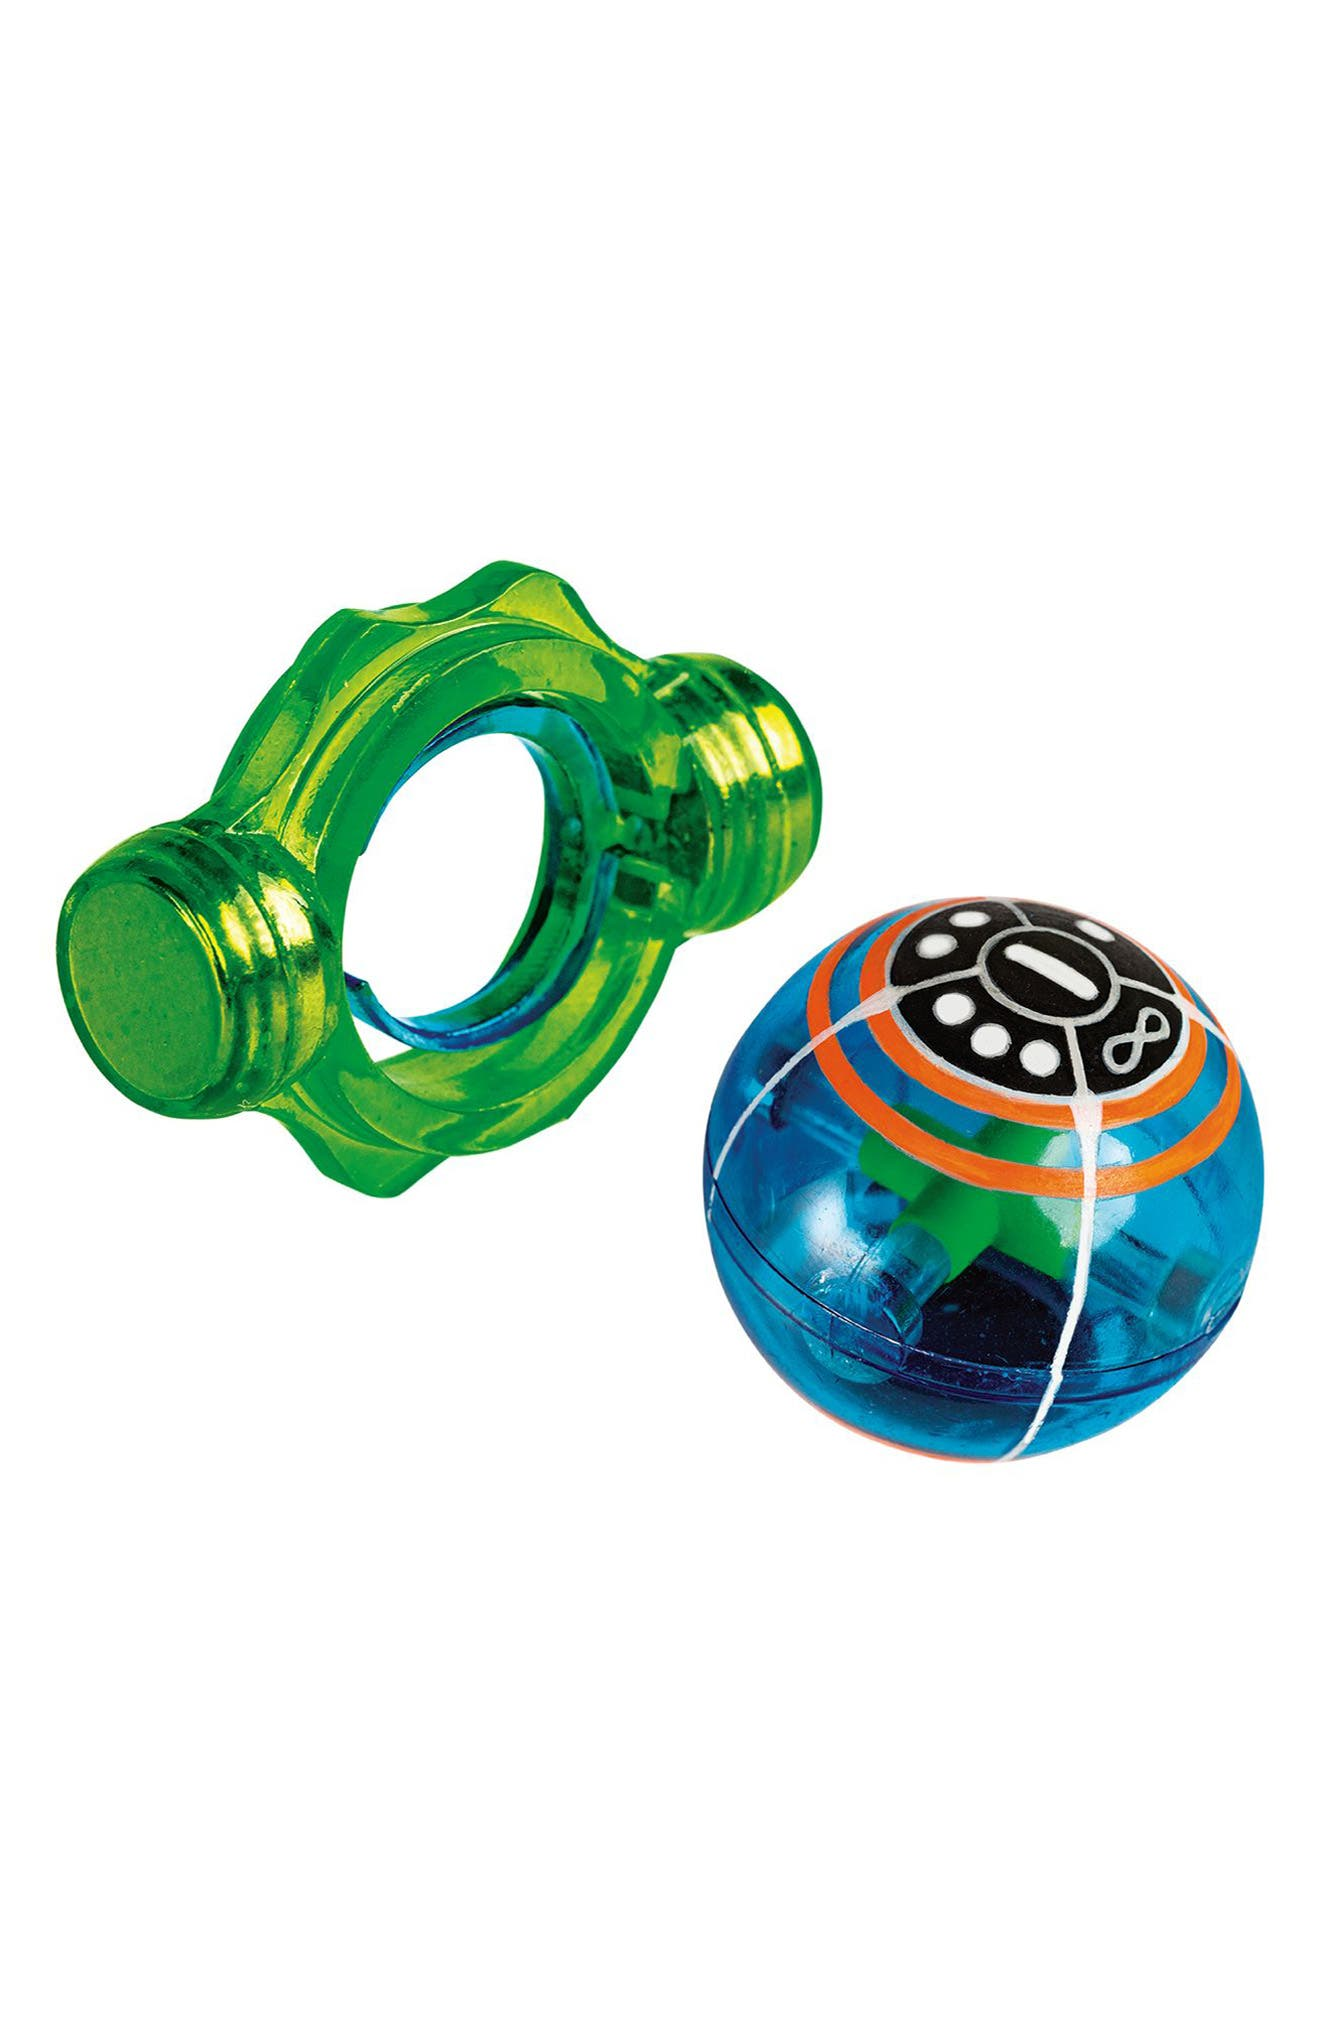 Alternate Image 1 Selected - Diggin Spinos Solo 2-Piece Magnetic Spin Toy